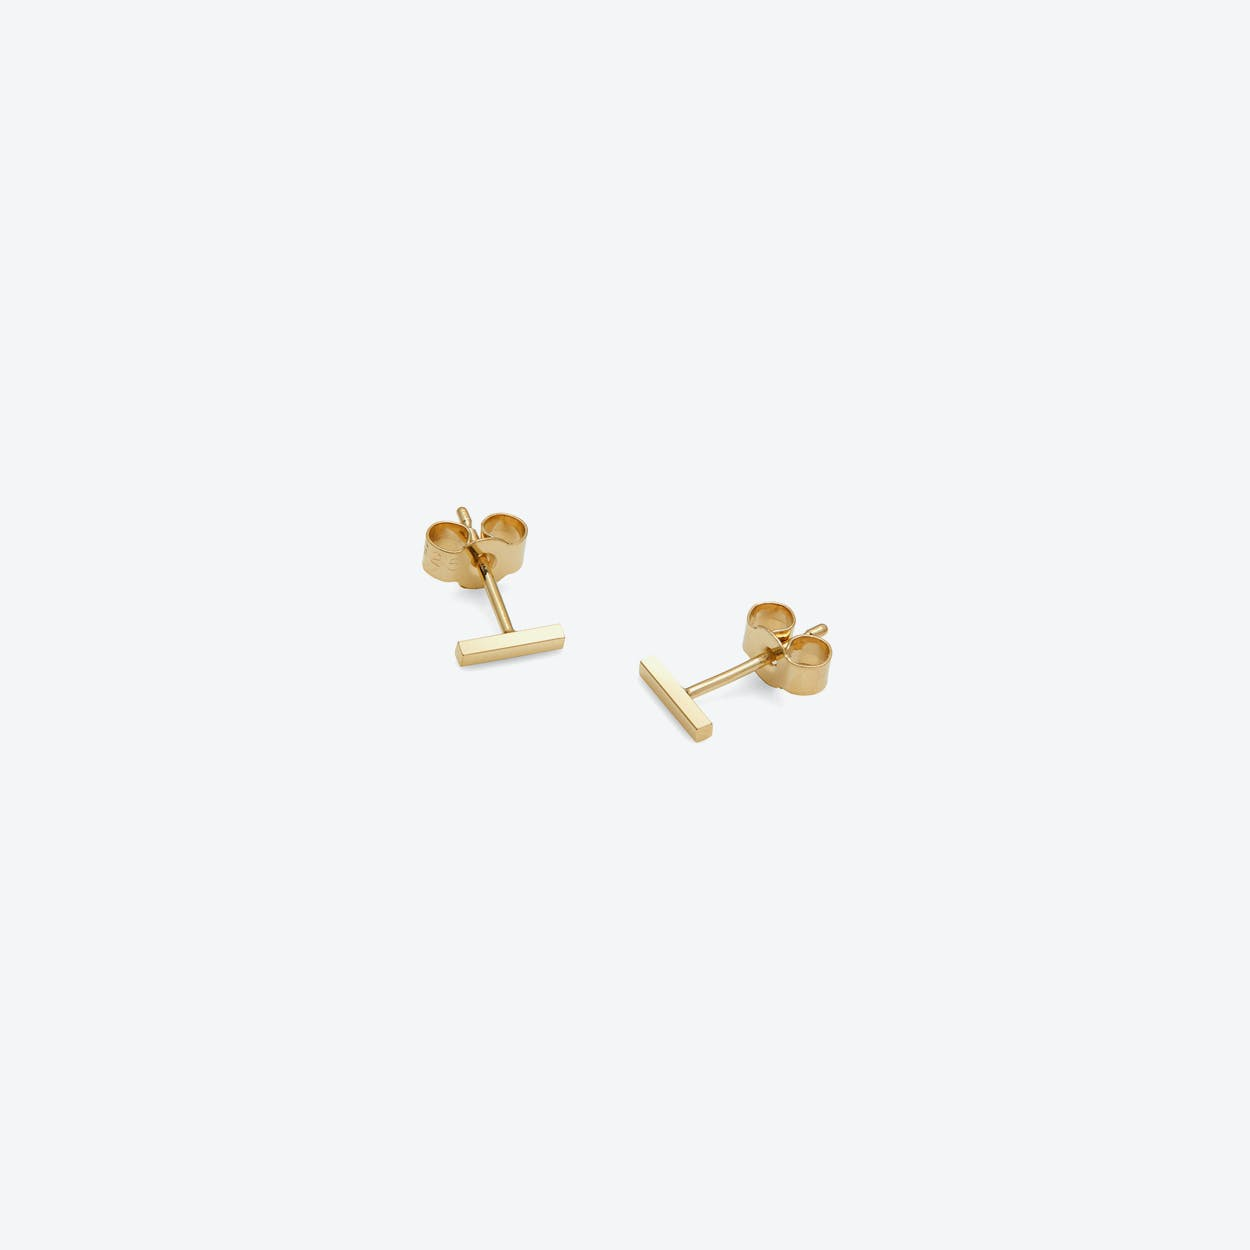 Mini Square Bar Stud Earrings in Gold